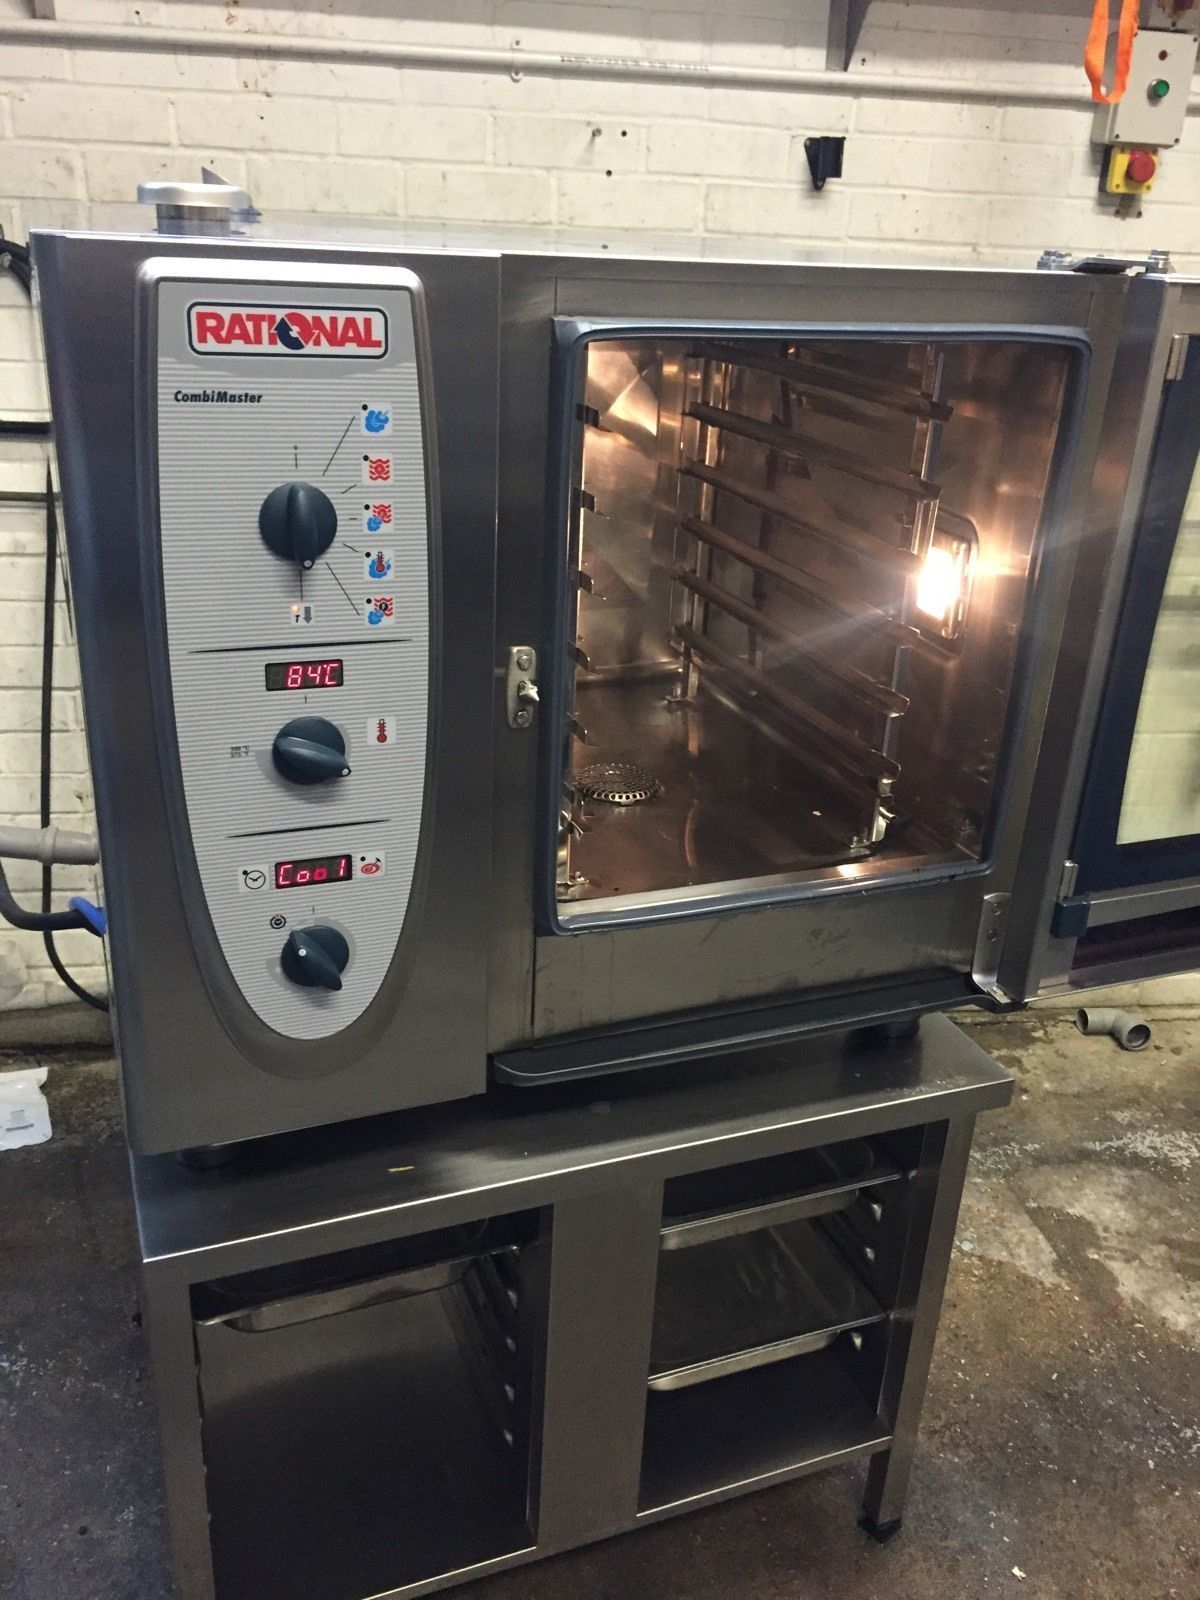 rational cm 61 combimaster 6 grid peri peri 1 phase used rational catering equipment. Black Bedroom Furniture Sets. Home Design Ideas